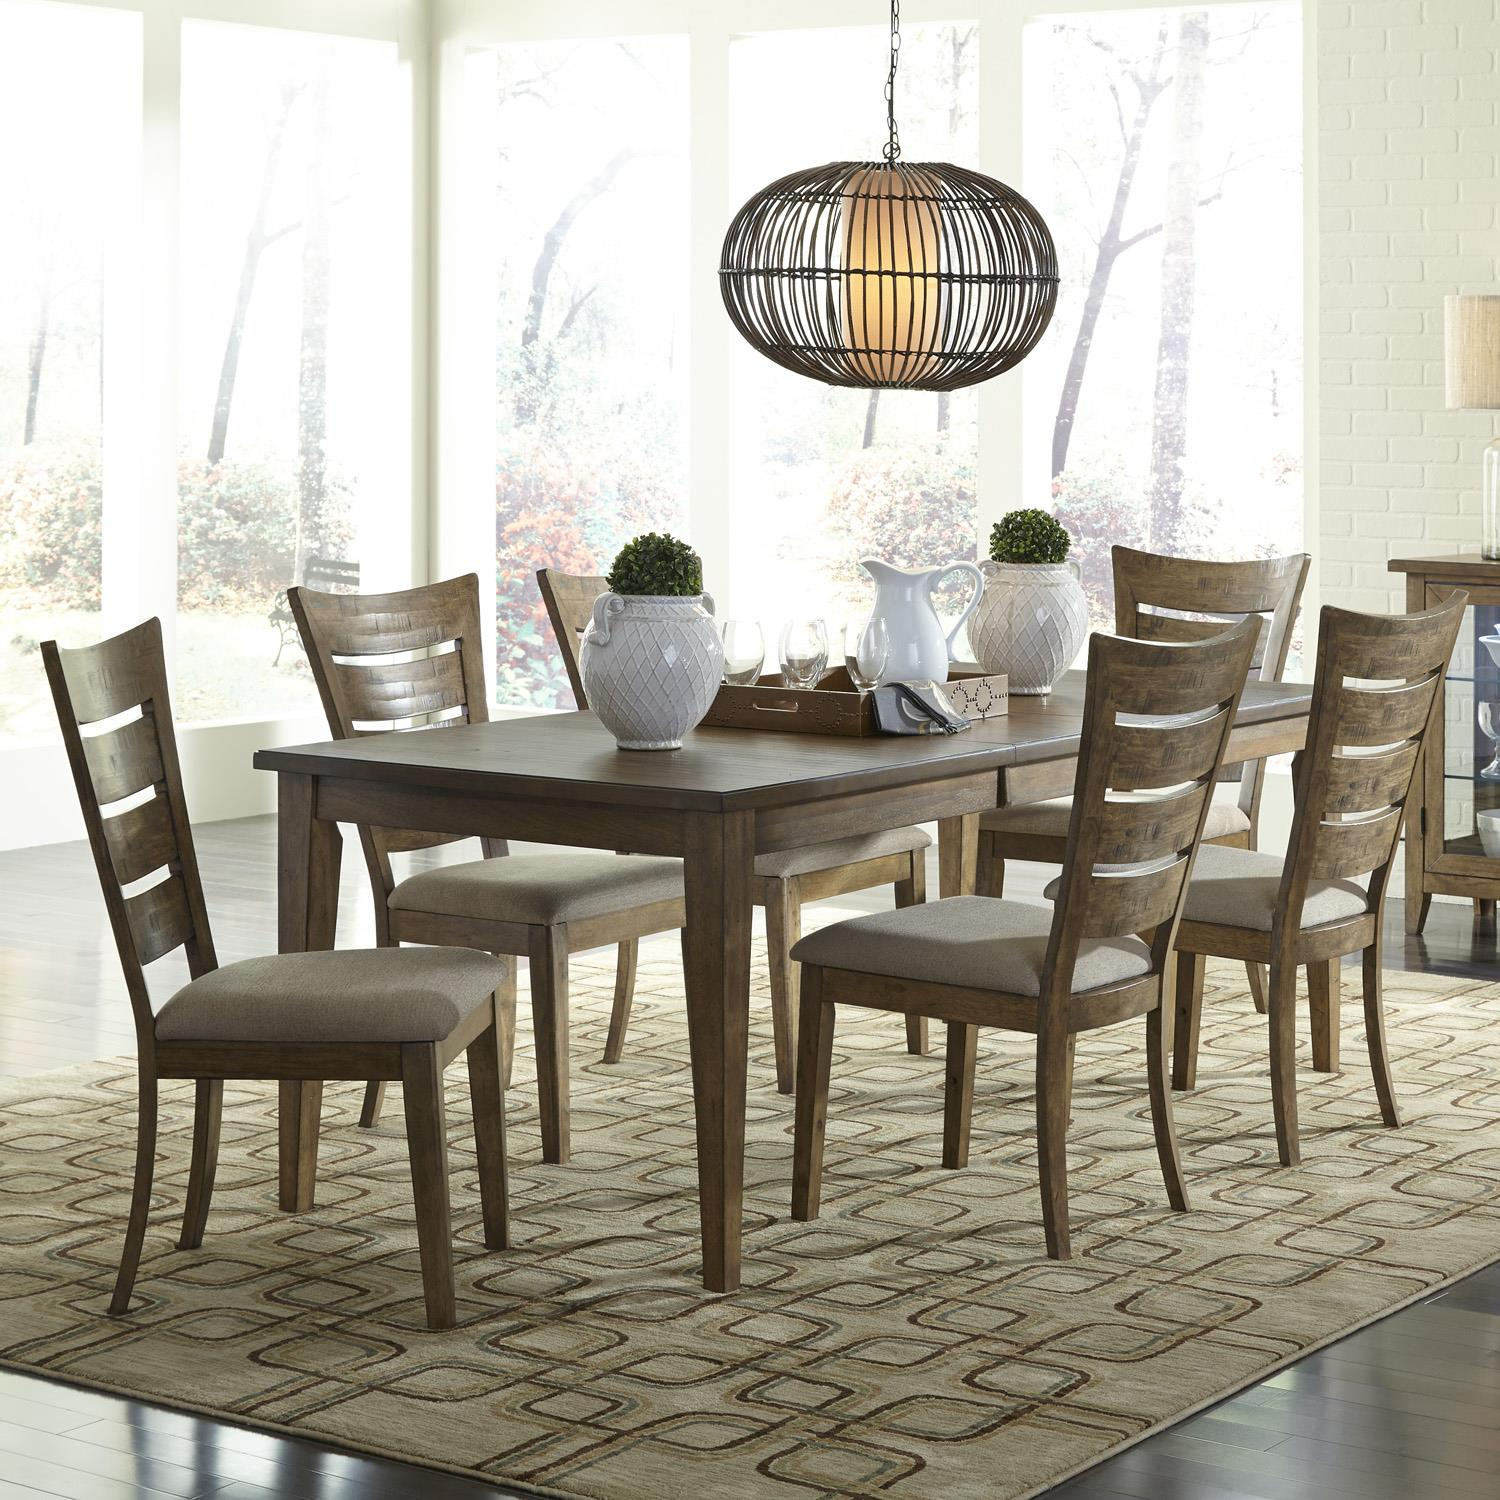 7 Piece Dining Set With Ladder Back Chairs